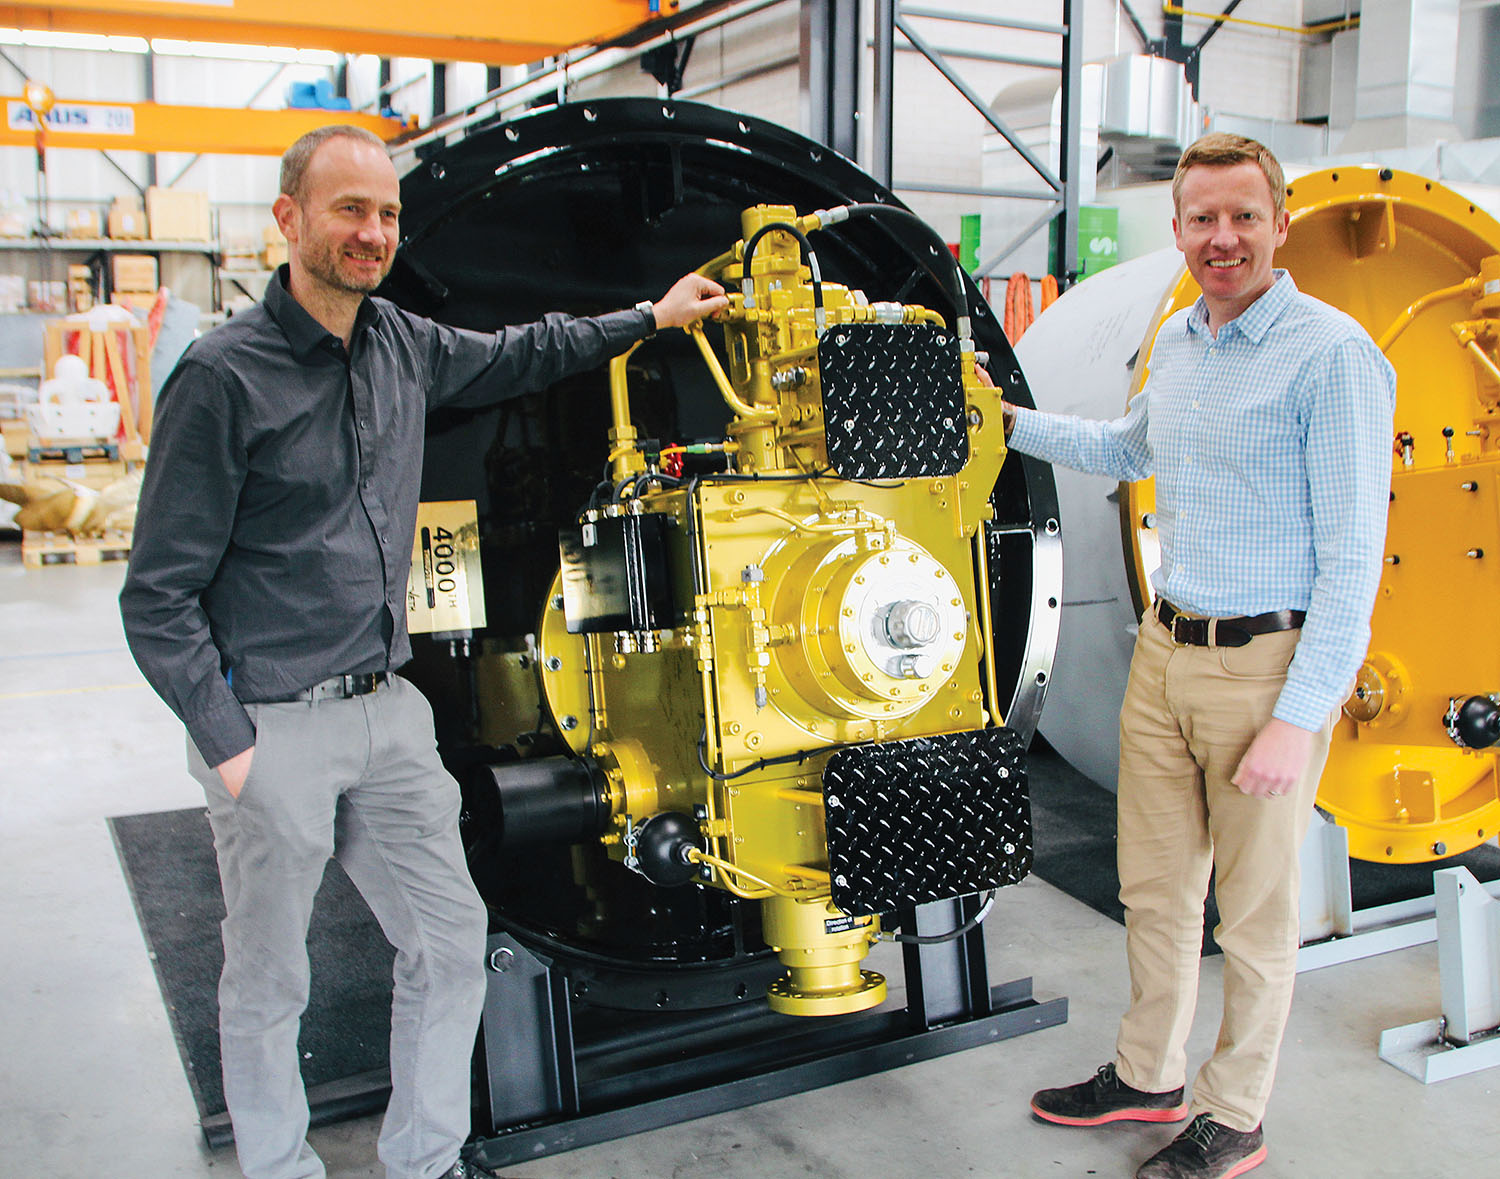 Erik Veth (left) and Tim Batten traveled to Greece to deliver a special-edition, golden thruster, the 4,000th thruster produced by Veth Propulsion since the first was built in 1986.